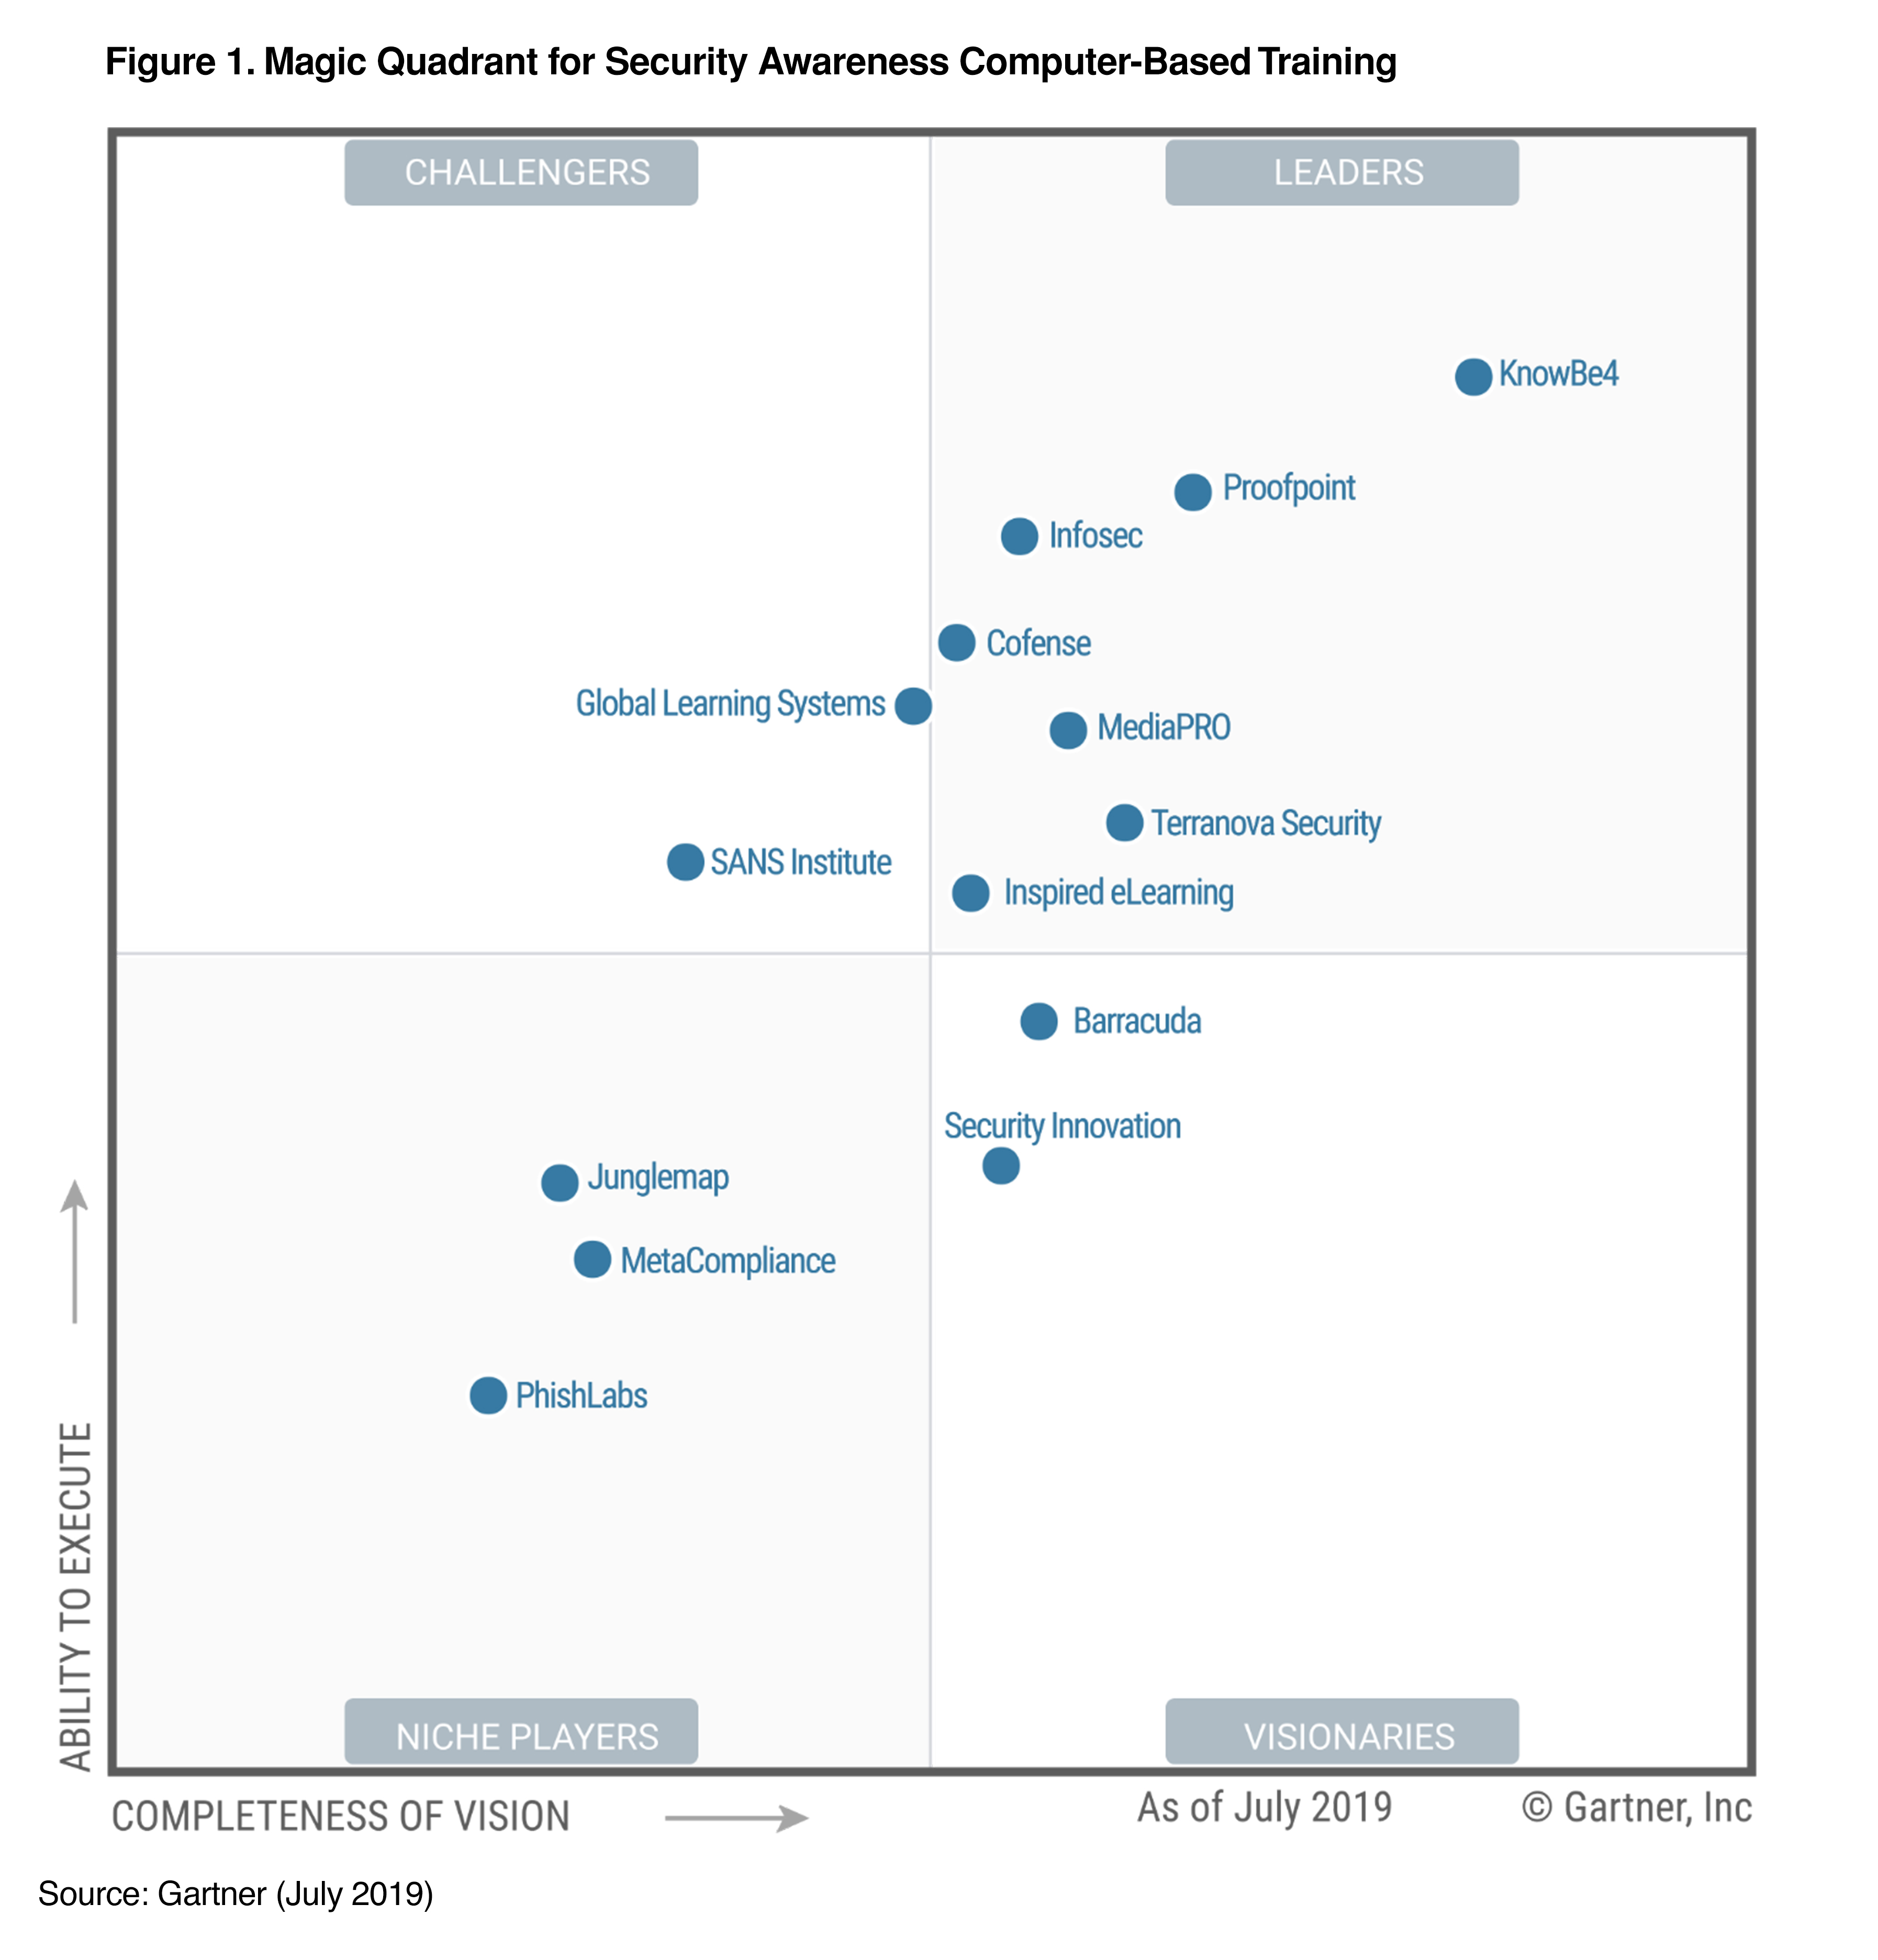 2019 Gartner Magic Quadrant for Security Awareness computer-based training